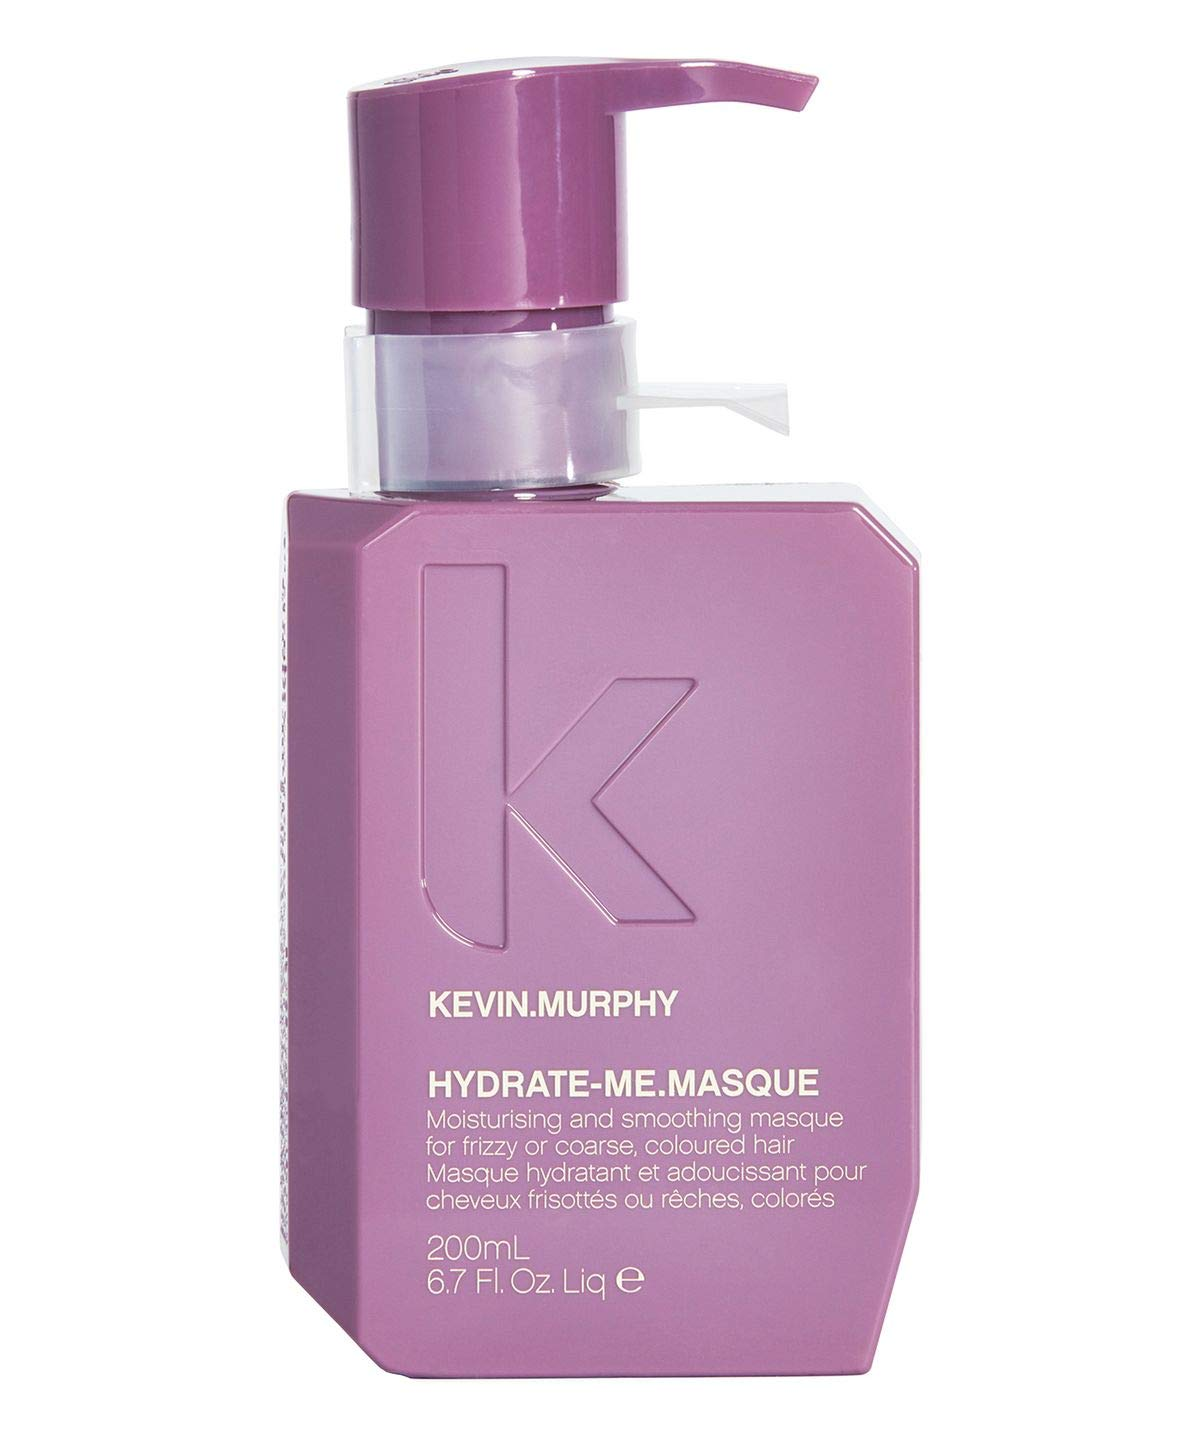 Kevin Murphy Hydrate Me Masque 6.7 Ounce